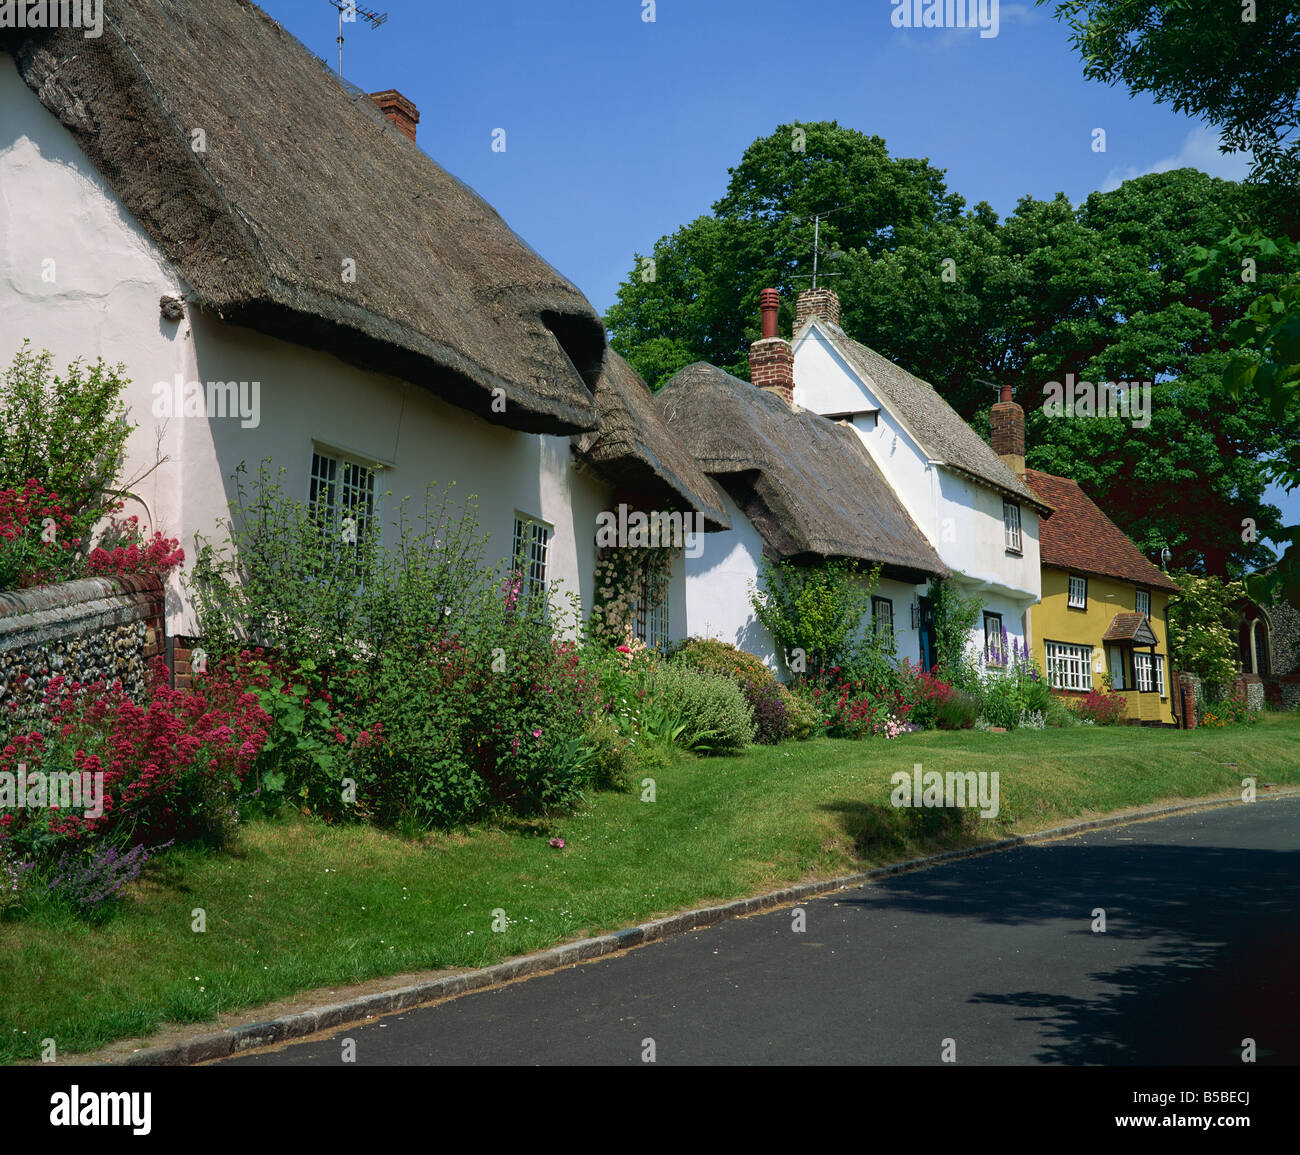 Cottages at Wendens Ambo, Essex, England, Europe - Stock Image